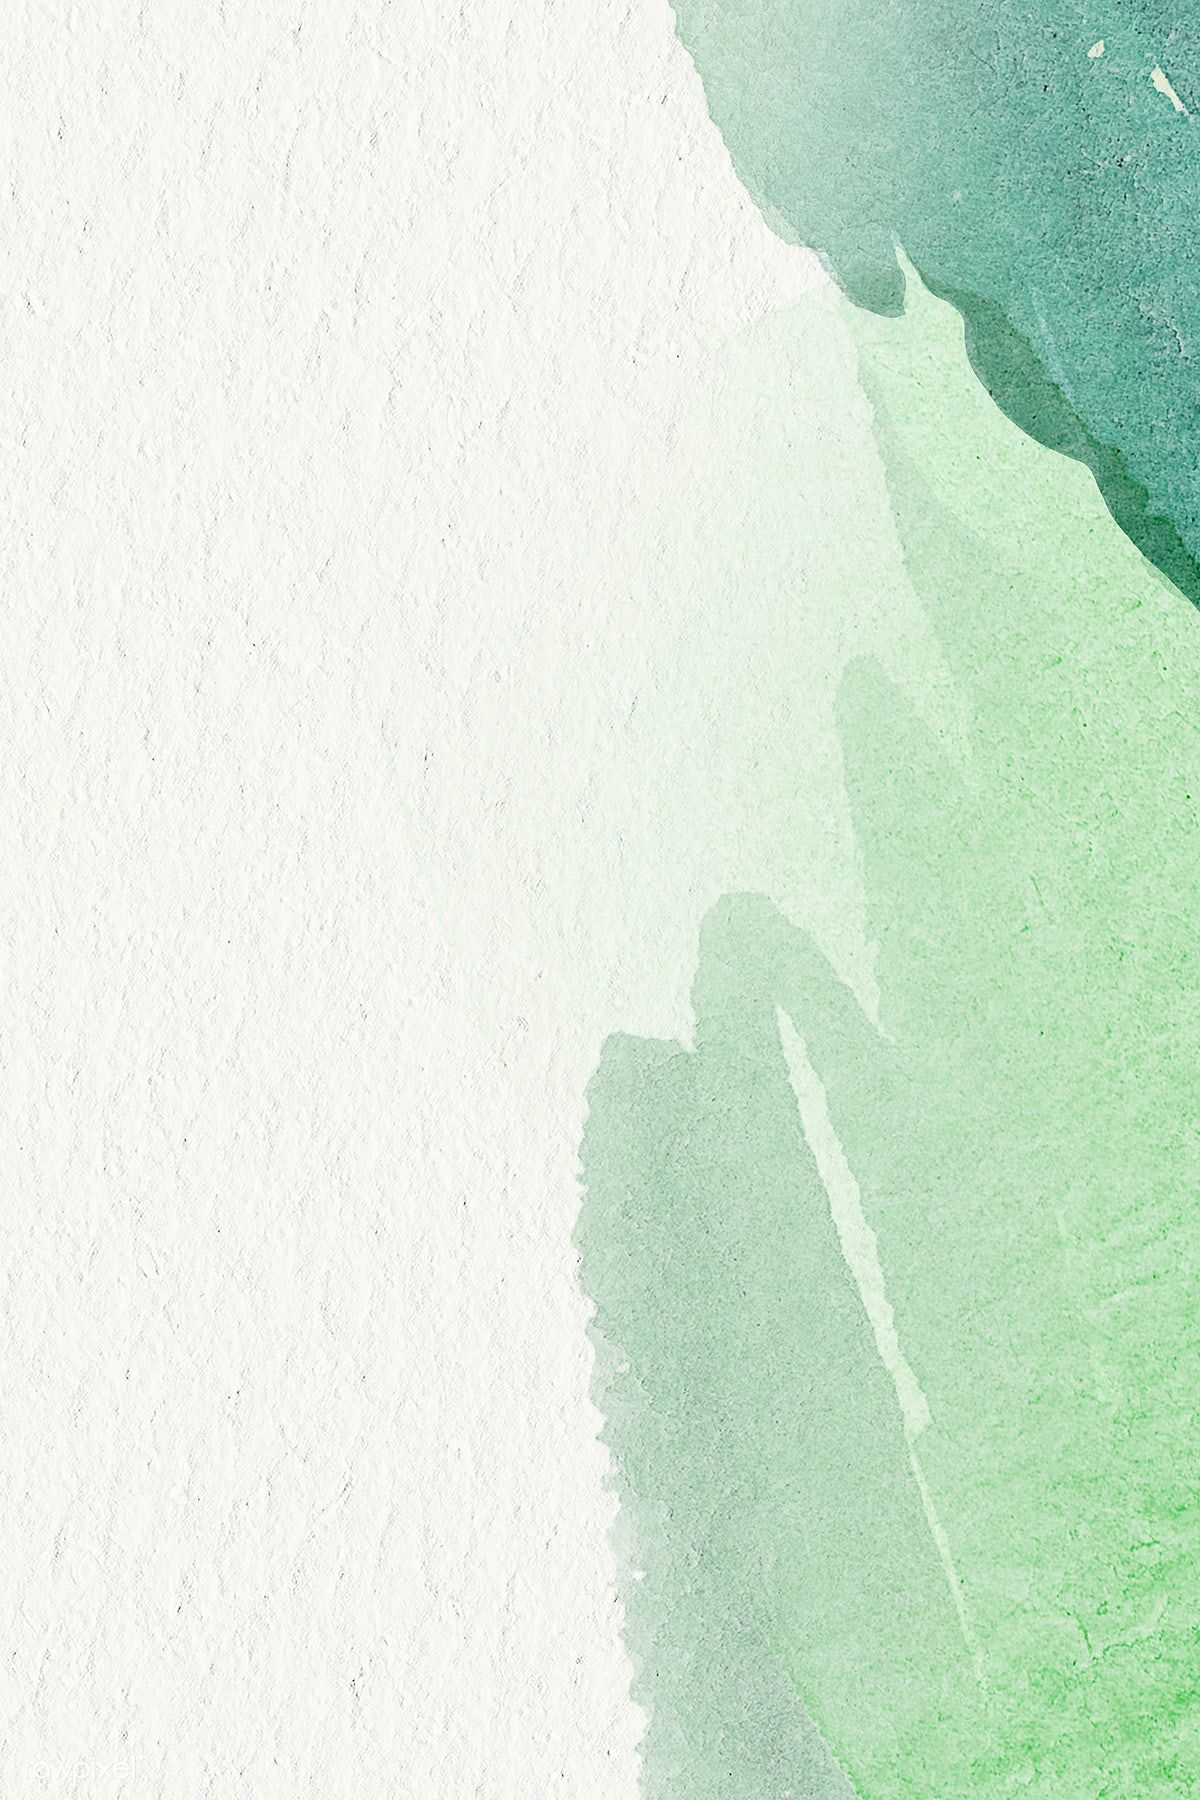 Green Watercolor On A Beige Background Vector Free Image By Rawpixel Com Adj Green Watercolor Wallpaper Green Watercolor Watercolor Wallpaper Phone